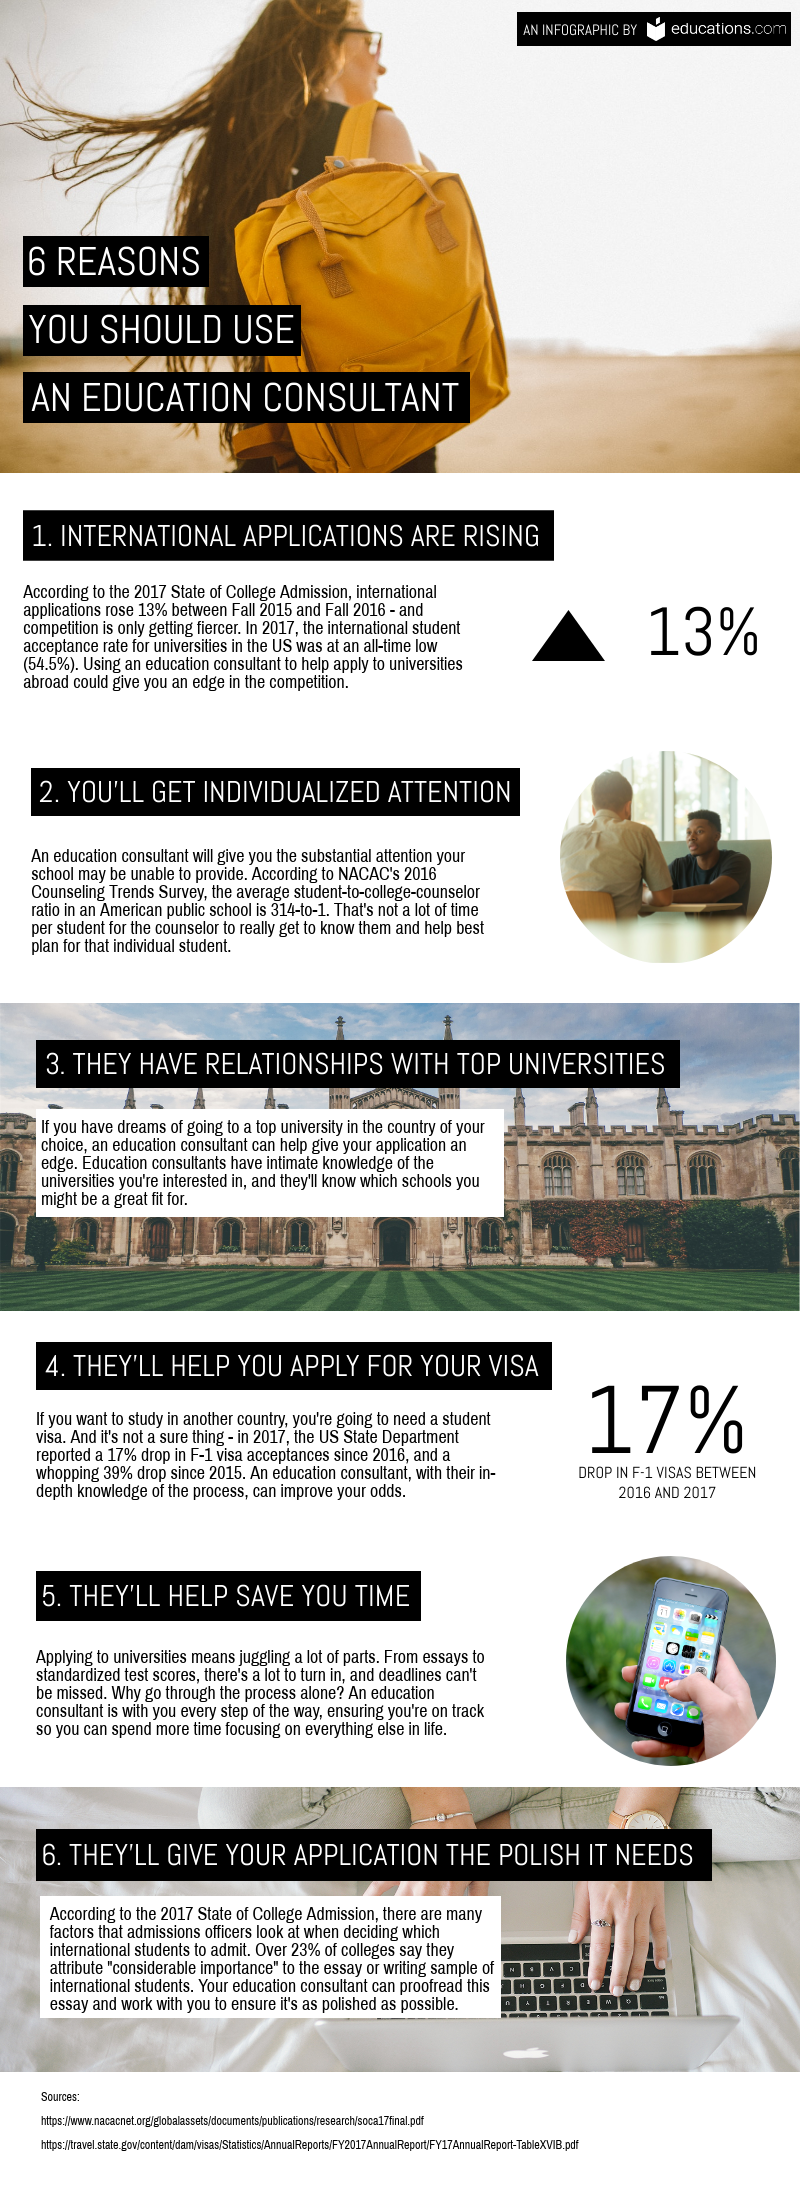 6 Reasons You Should Use An Education Consultant Infographic by educations.com